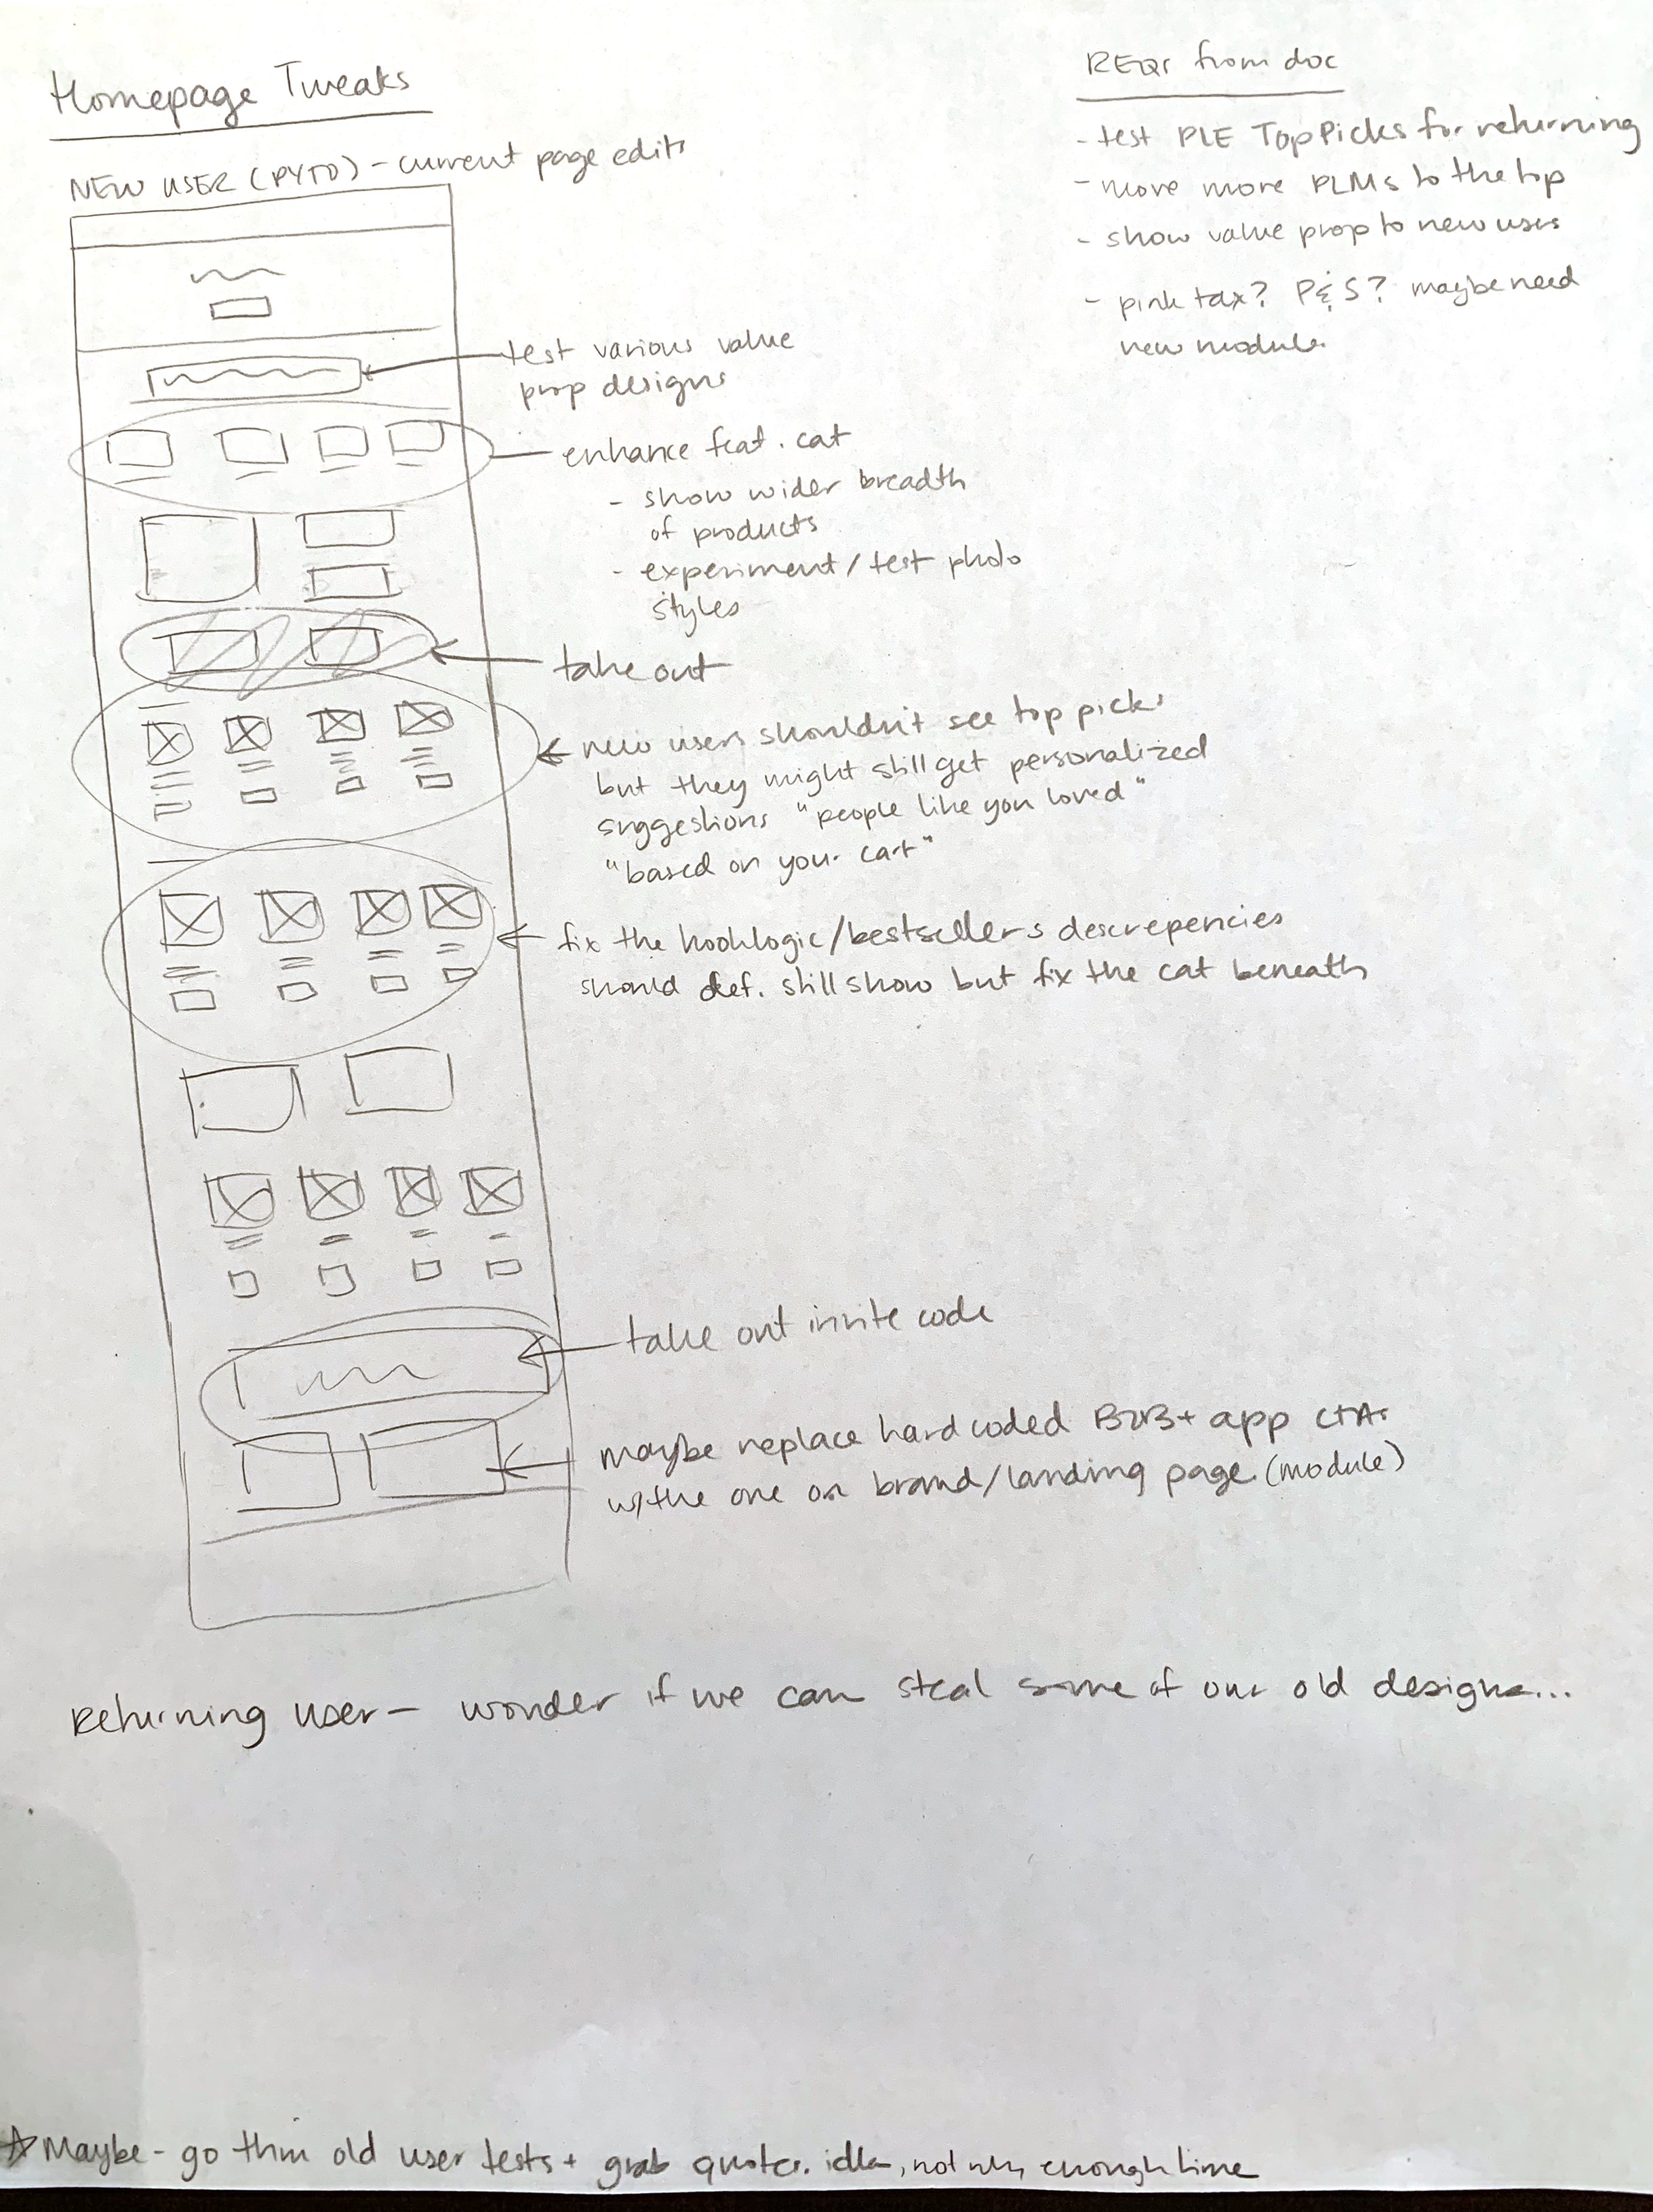 Sketches depicting WHAT SHOULD CHANGE ON THE CURRENT NEW USER HOMEPAGE